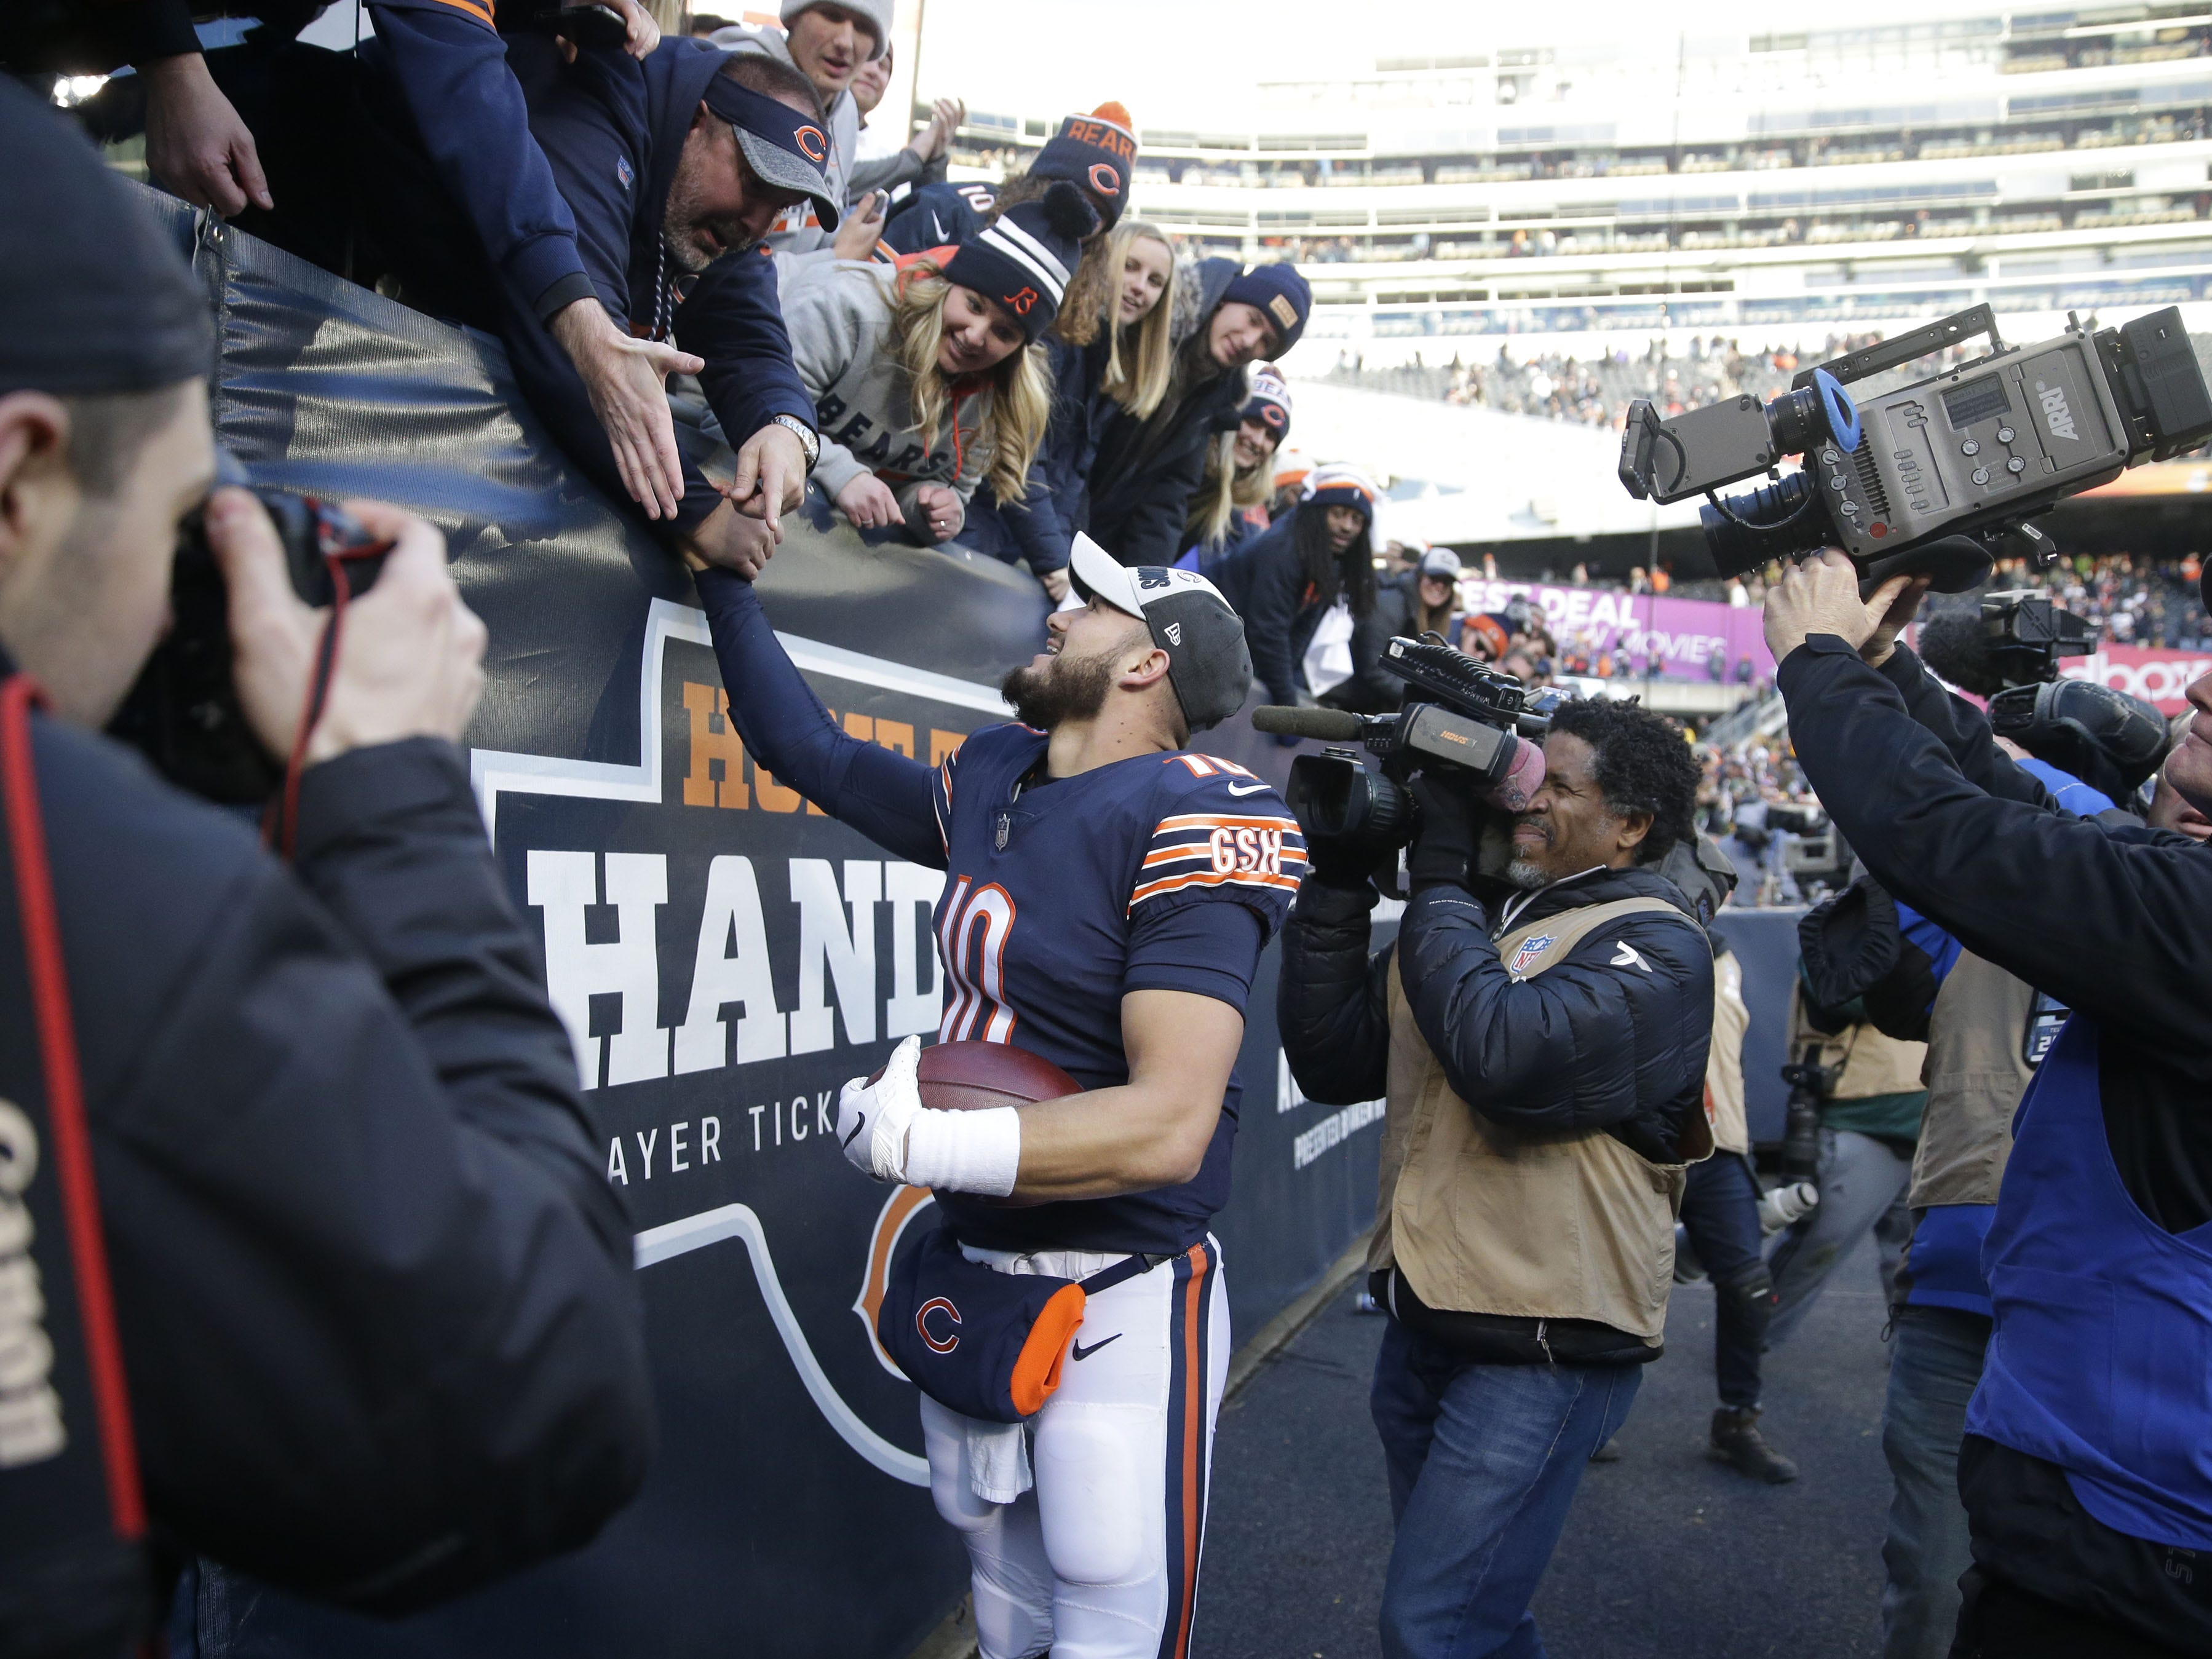 Chicago Bears' Mitchell Trubisky greets fans after the 2nd half of the Green Bay Packers 24-17 loss to the Chicago Bears at Soldier Field Sunday, Dec. 16, 2018, in Chicago. Photo by Mike De Sisti / The Milwaukee Journal Sentinel